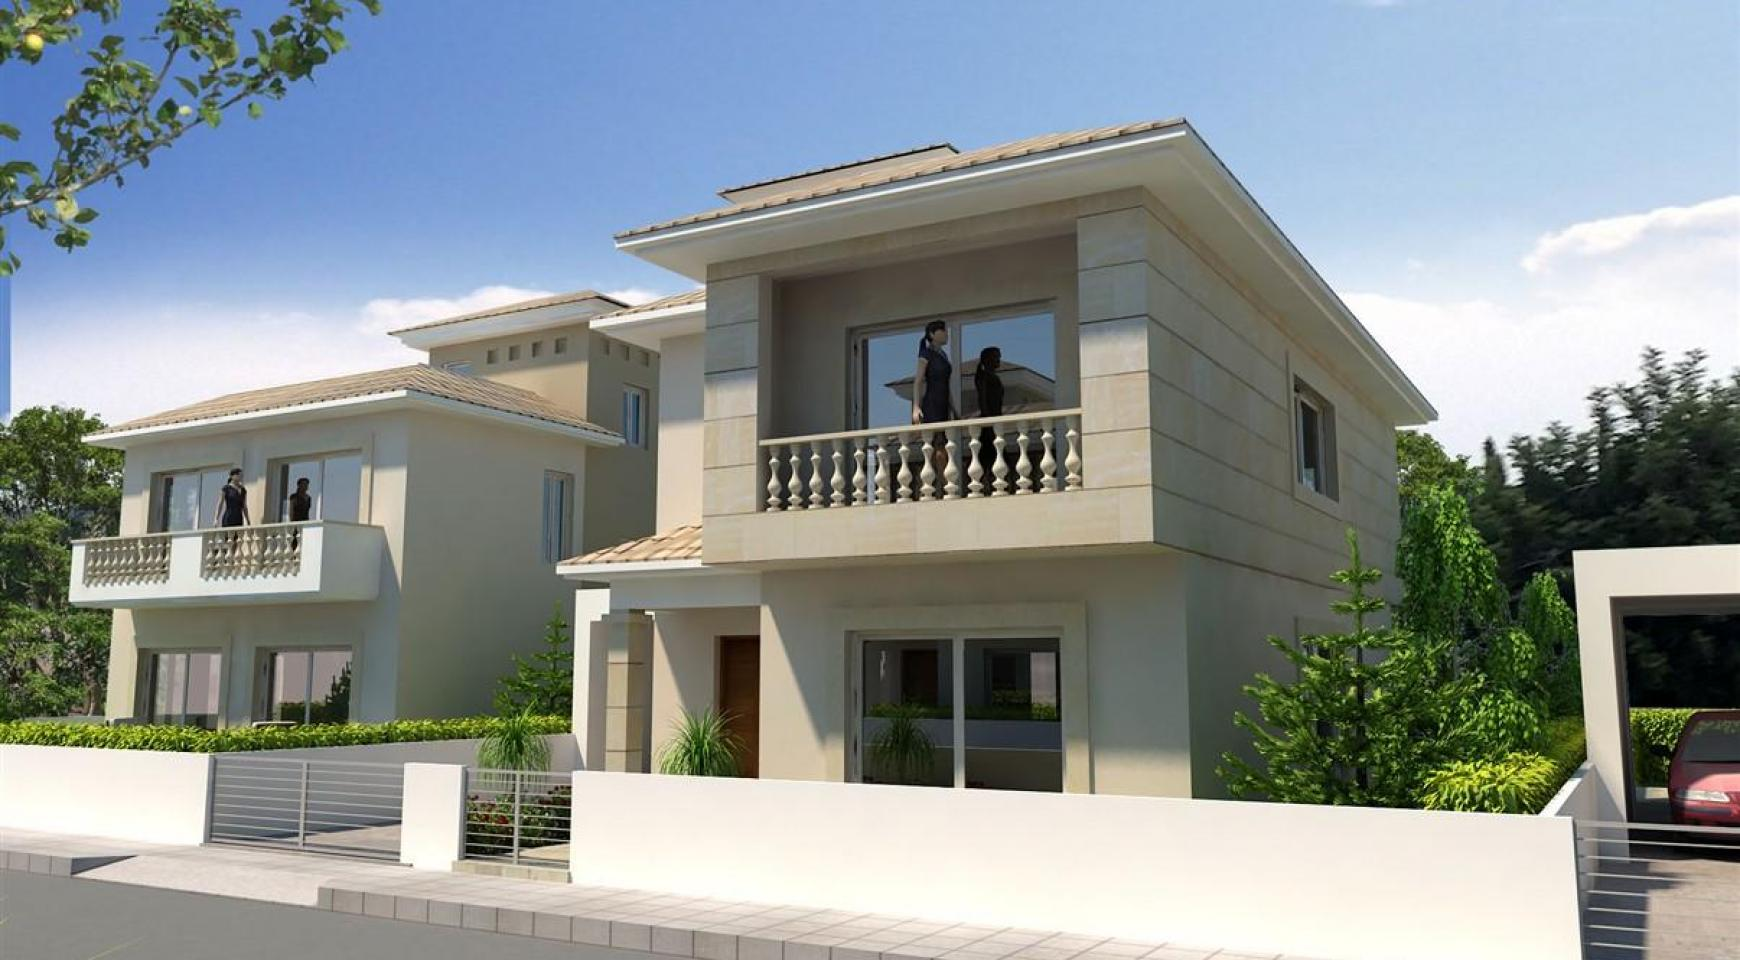 3 Bedroom Villa in New Project in Paphos - 12